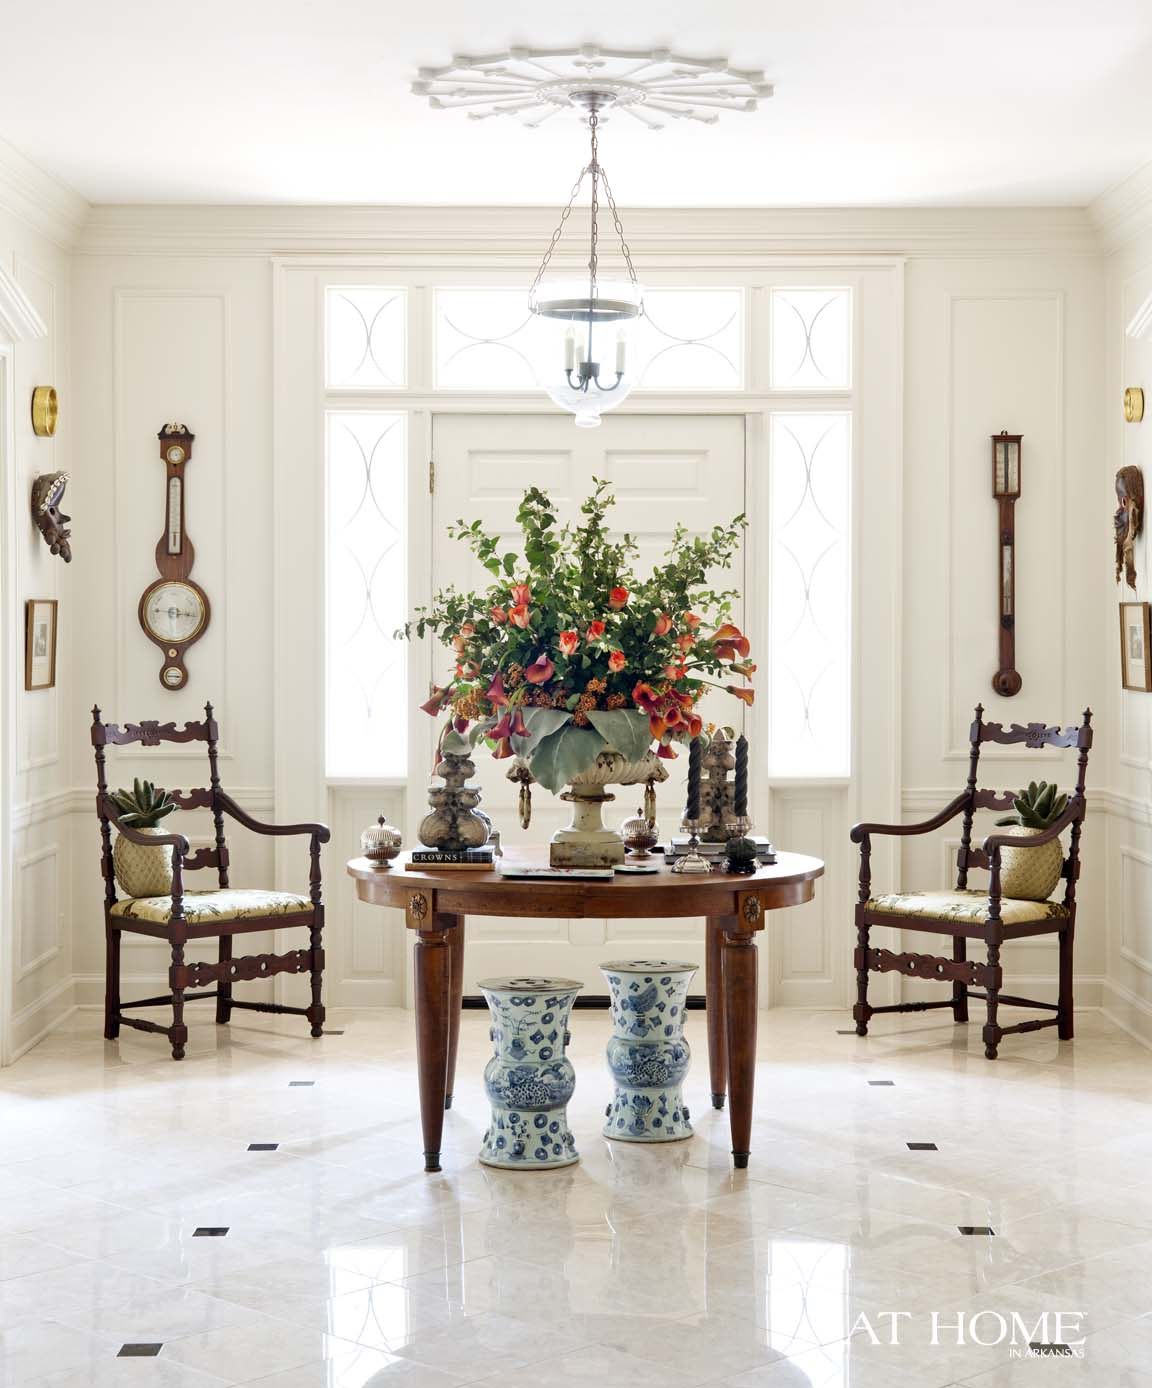 other-interior-bedroom-furniture-foyer-ideas-inspiration-fresh-ideas-for-foyers-also-entries